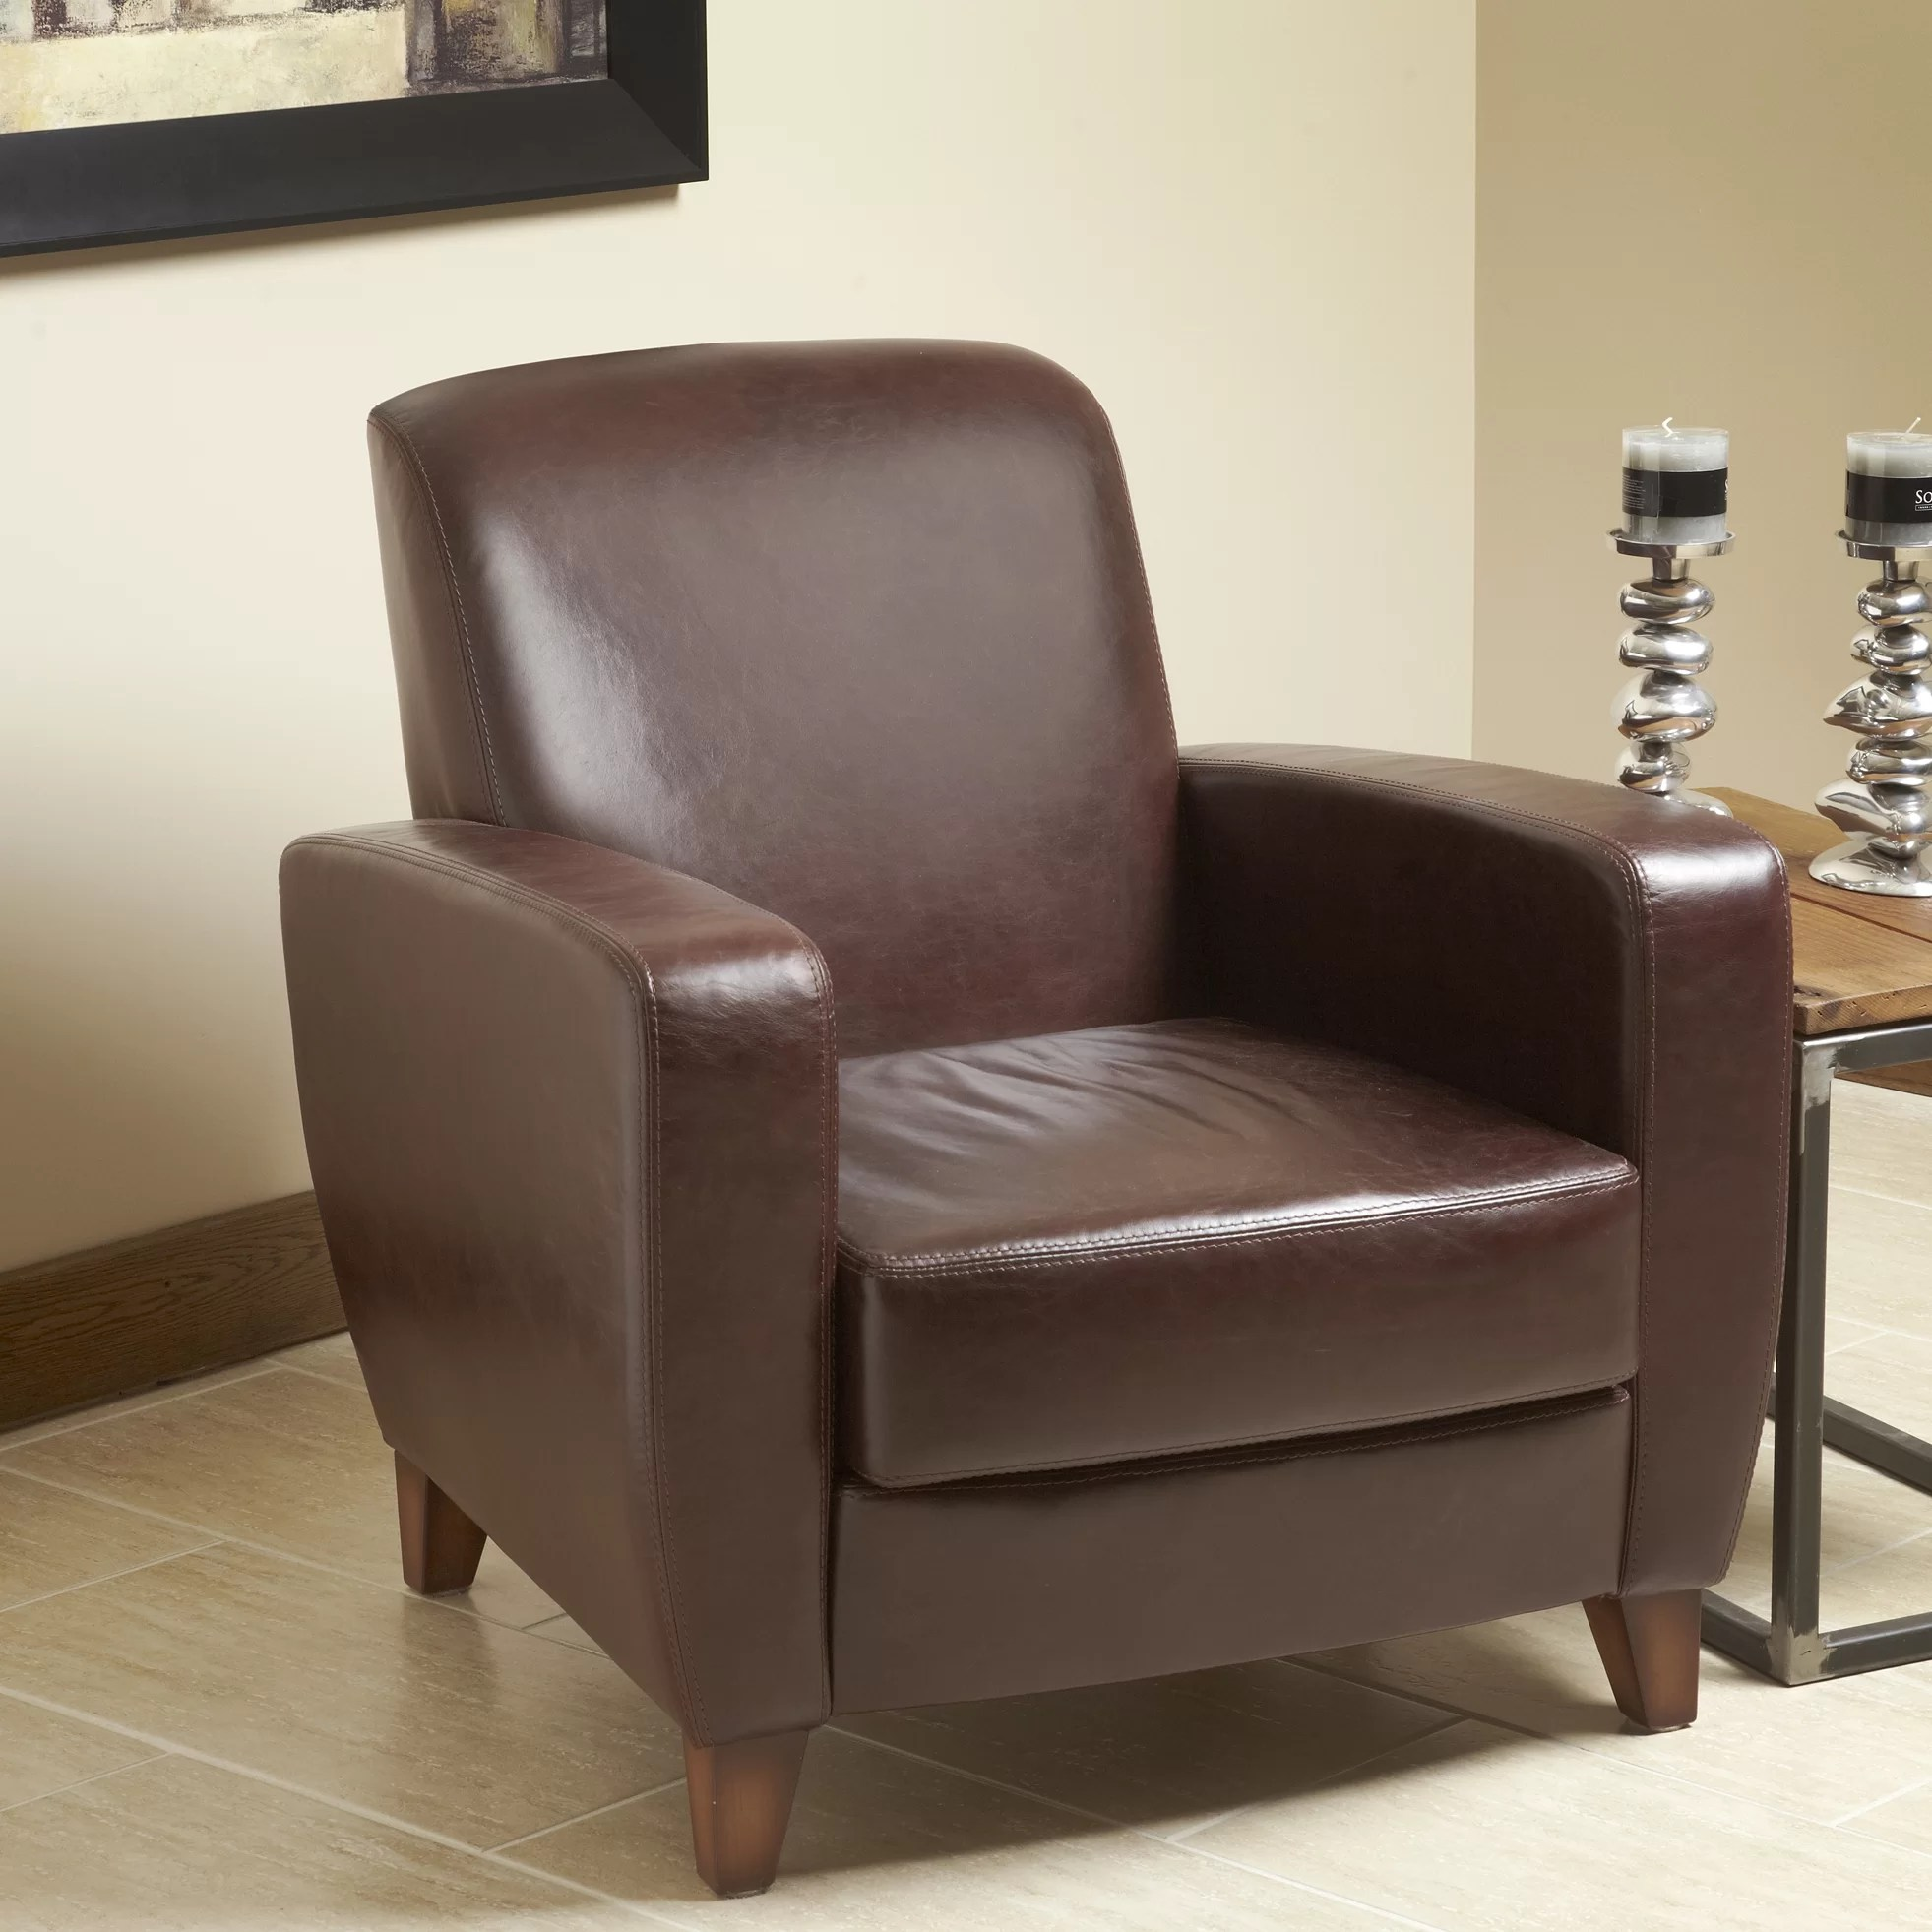 Top Grain Leather Club Chair Lind Furniture Modavi Top Grain Leather Club Chair Wayfair